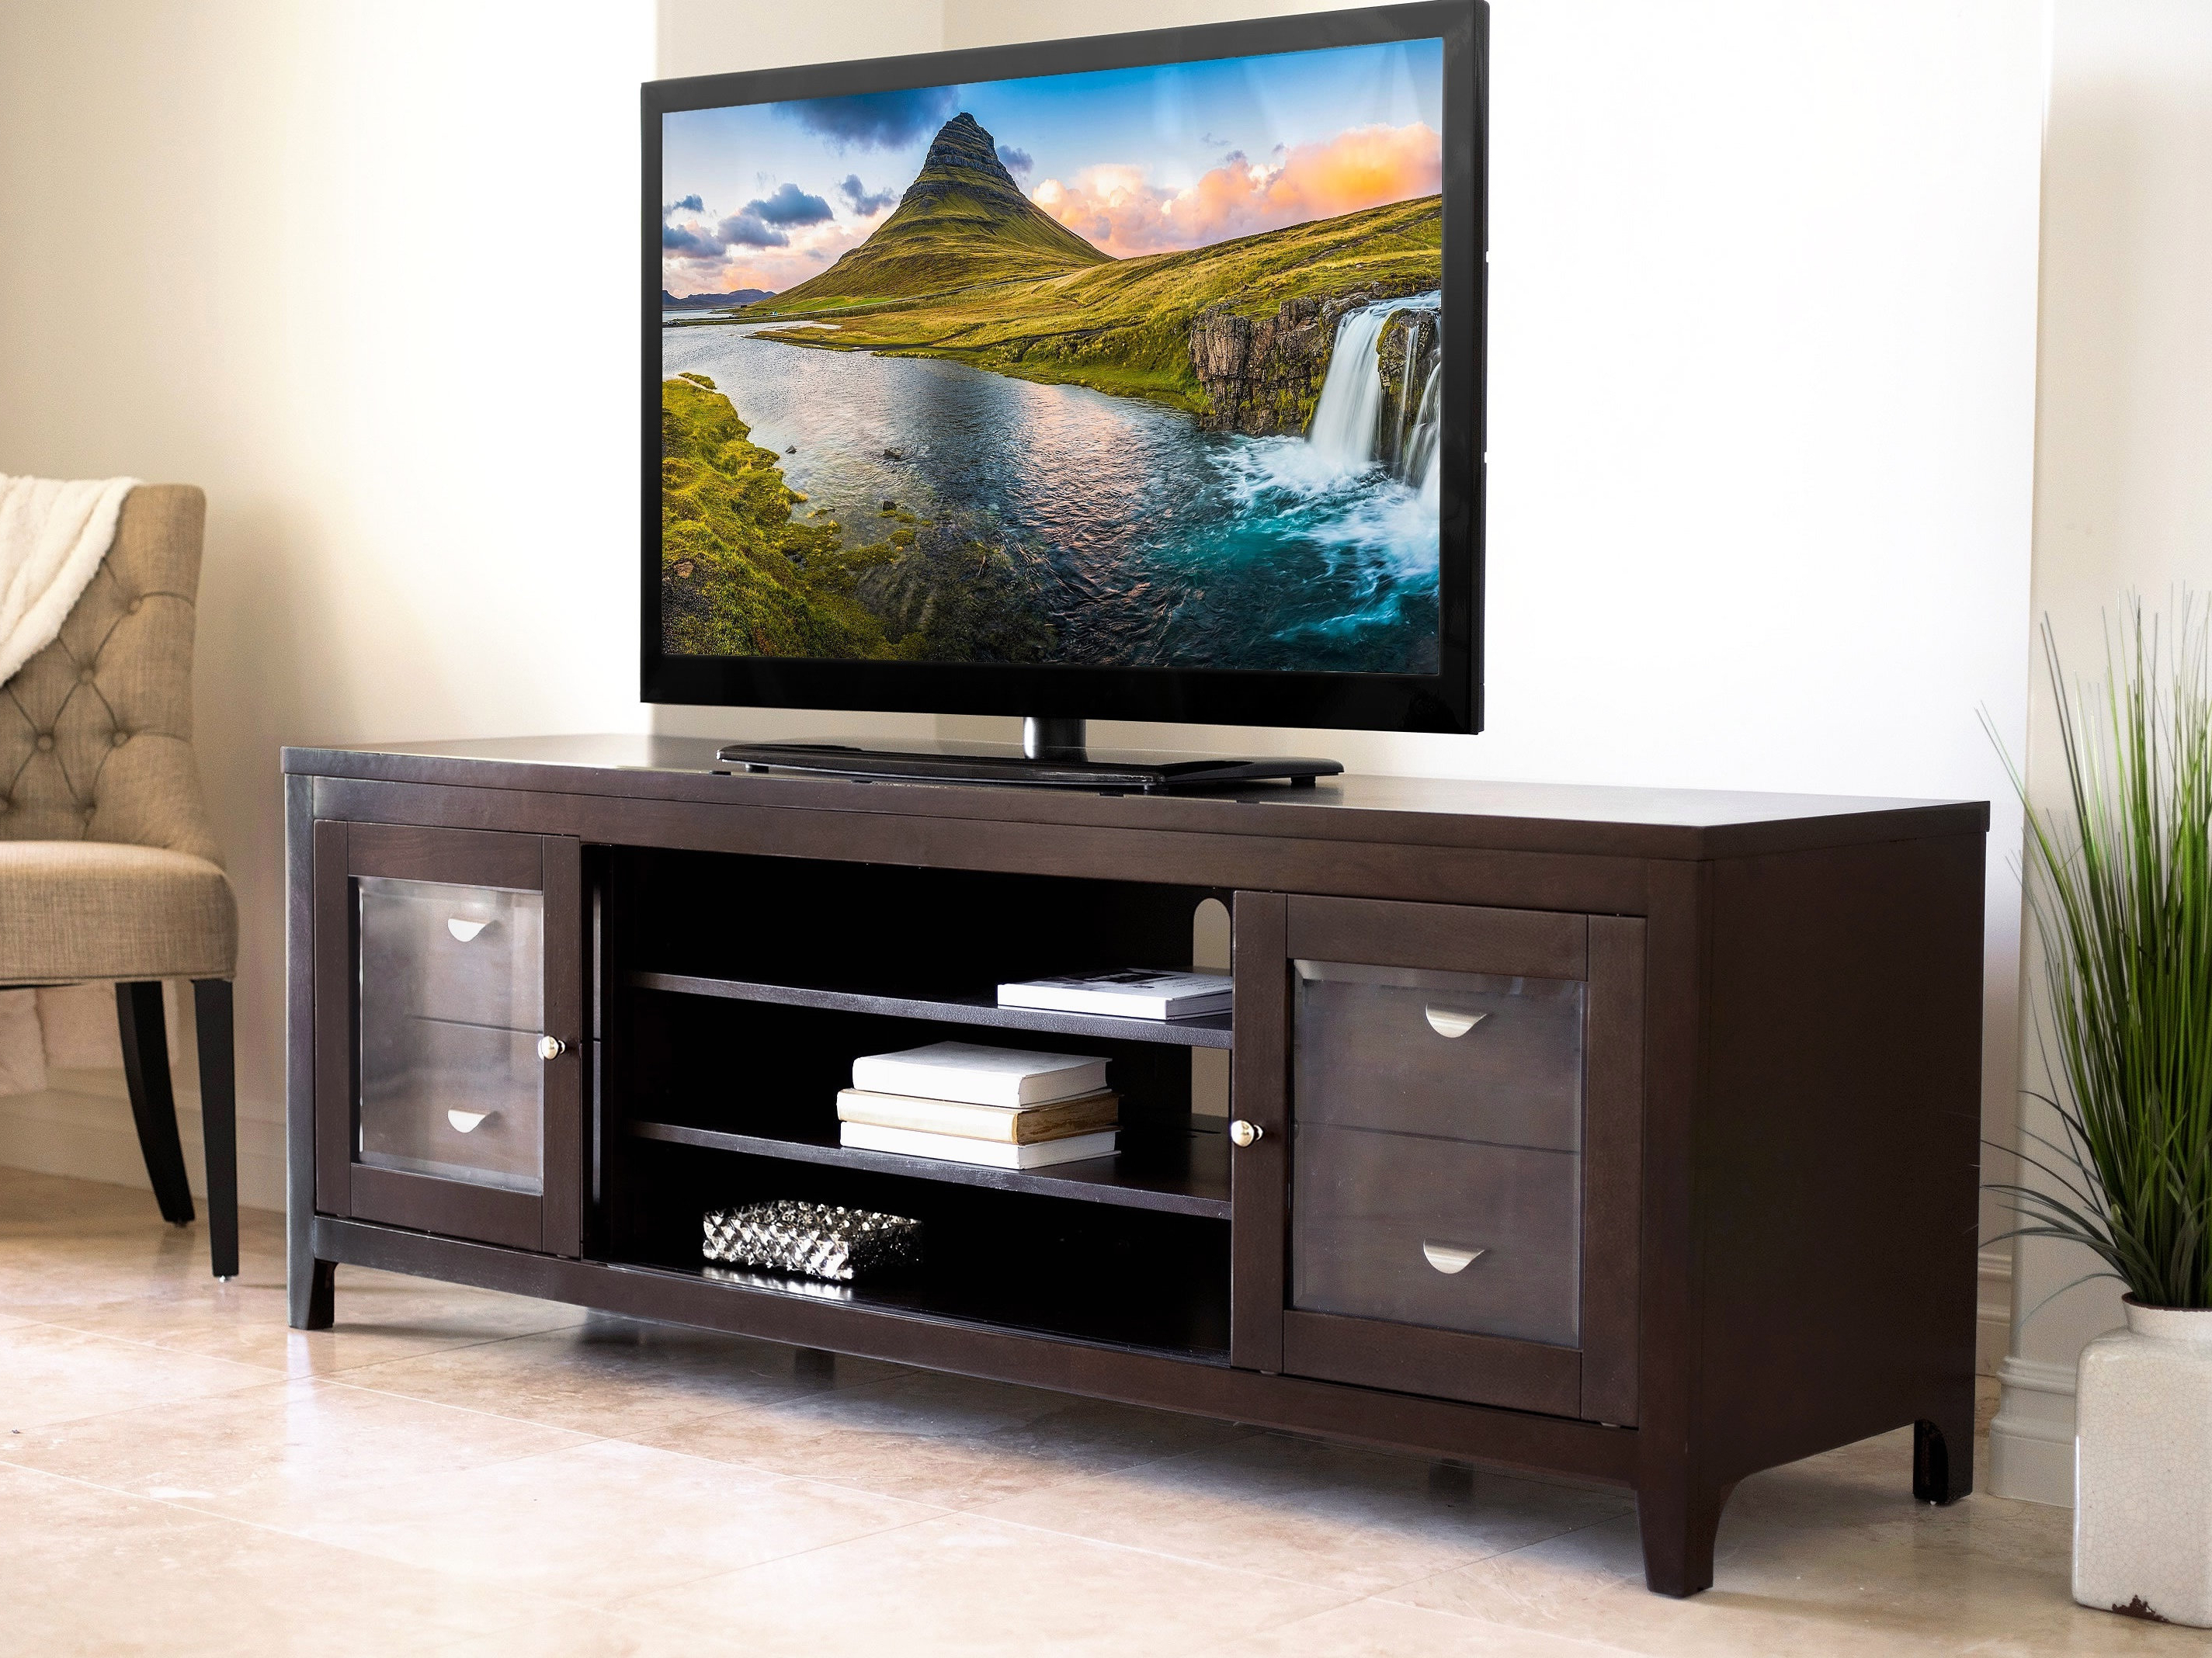 "Red Barrel Studio Spilker Tv Stand For Tvs Up To 70"" & Reviews 